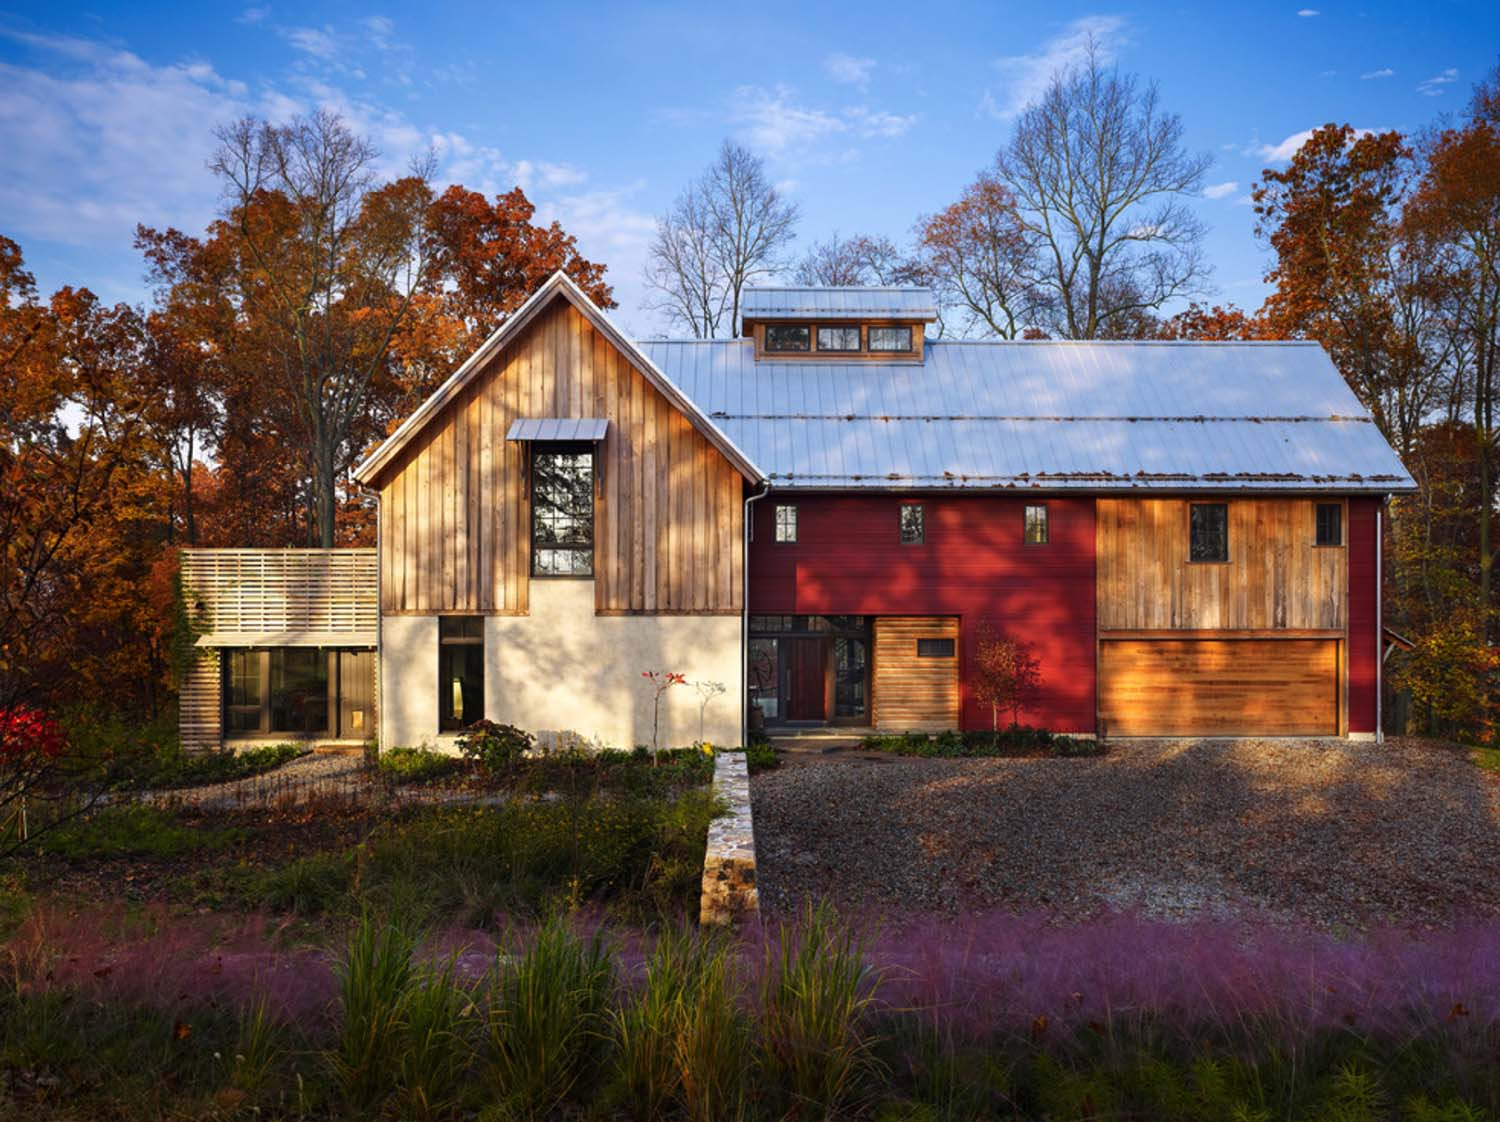 Sustainable modern rustic barn house in pennsylvania for Modern rustic house plans